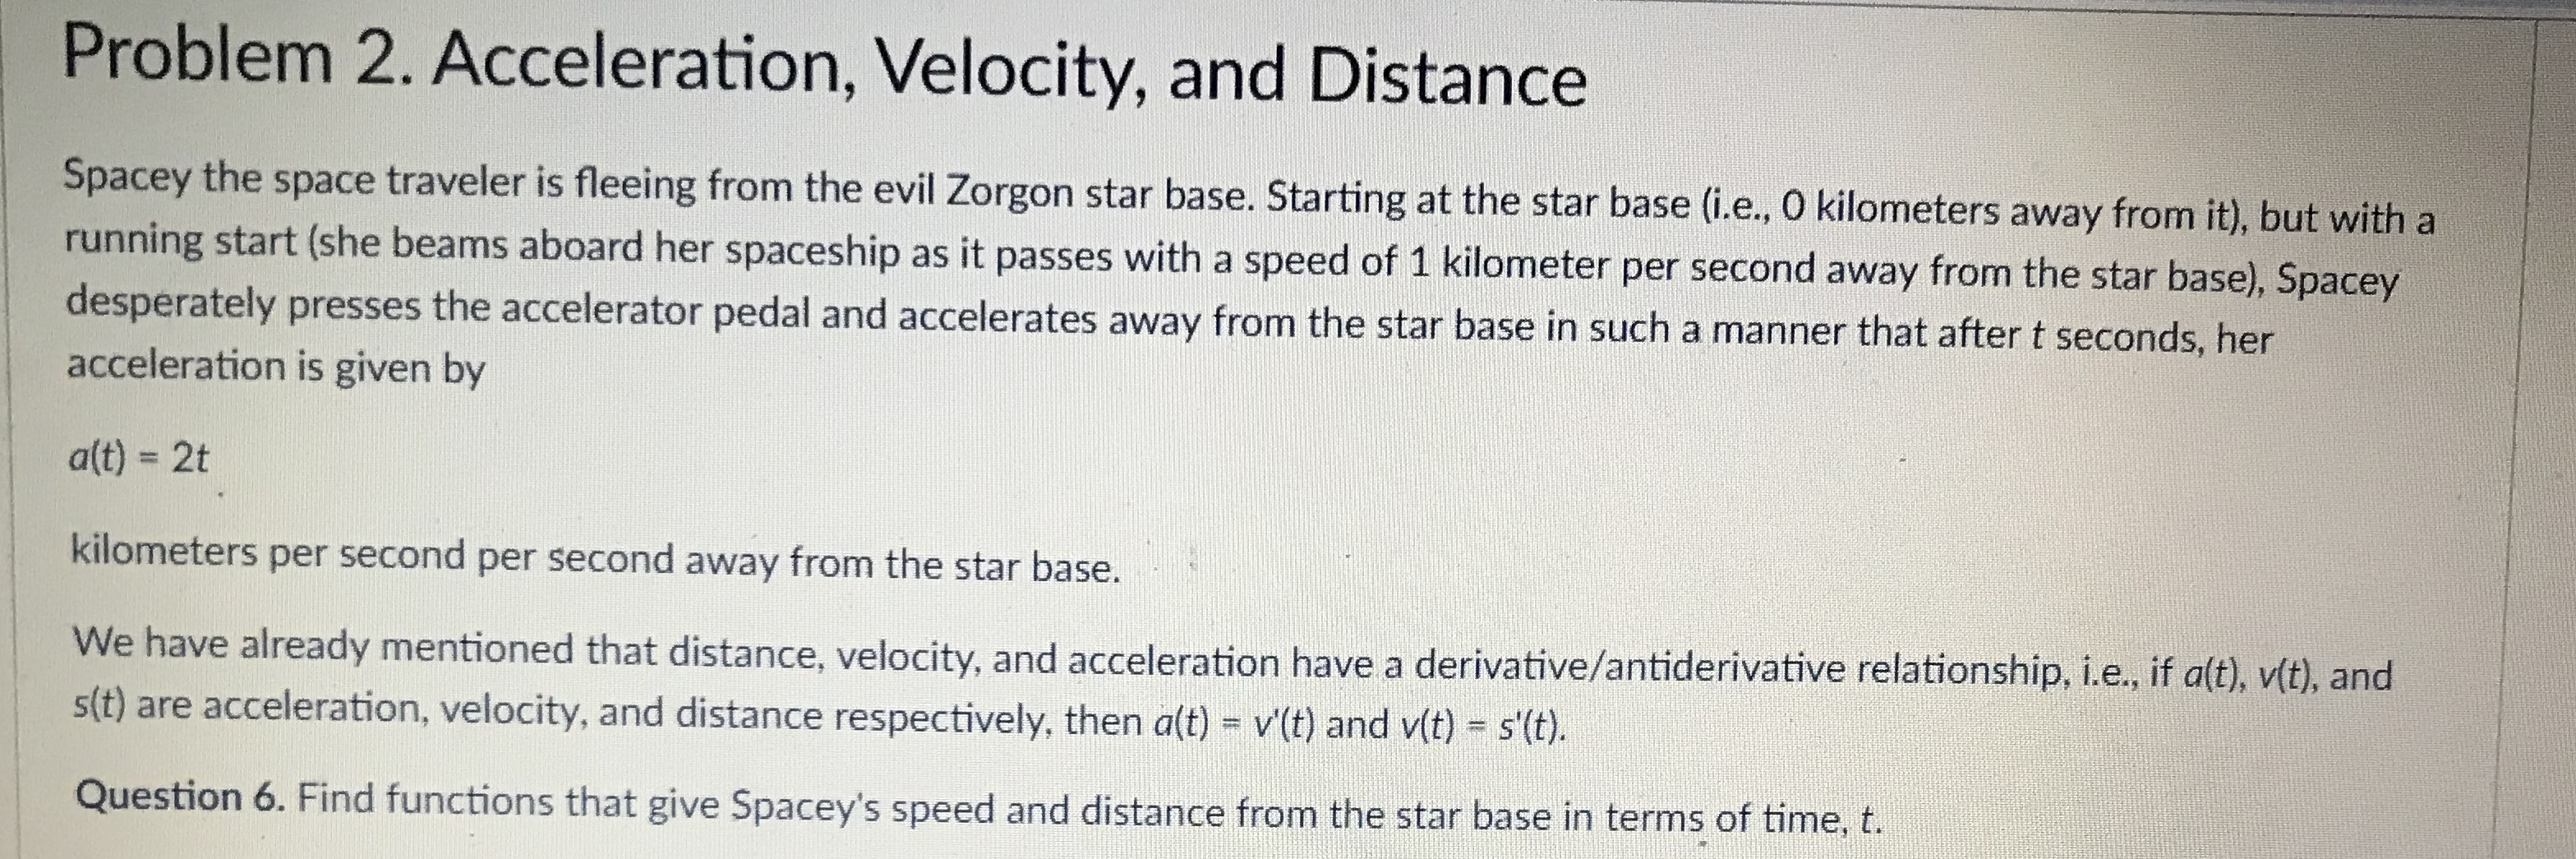 Problem 2. Acceleration, Velocity, and Distance Spacey the space traveler is fleeing from the evil Zorgon star base. Starting at the star base (i.e., O kilometers away from it), but with a running start (she beams aboard h desperately presses the accelerator pedal and accelerates away from the star base in such a manner that after t seconds, her acceleration is given by er spaceship as it passes with a speed of 1 kilometer per second away from the star base), Spacey alt) - 2t kilometers per second per second away from the star base. We have already mentioned that distance, velocity, and acceleration st) are acceleration, velocity, and distance respectively, then aft) - vt) and v(t)-st. Question 6. Find functions that give Spacey's speed and distance from the star base in terms of time, t. have a derivative/antiderivative relationship, i.e, if alt), vit), and